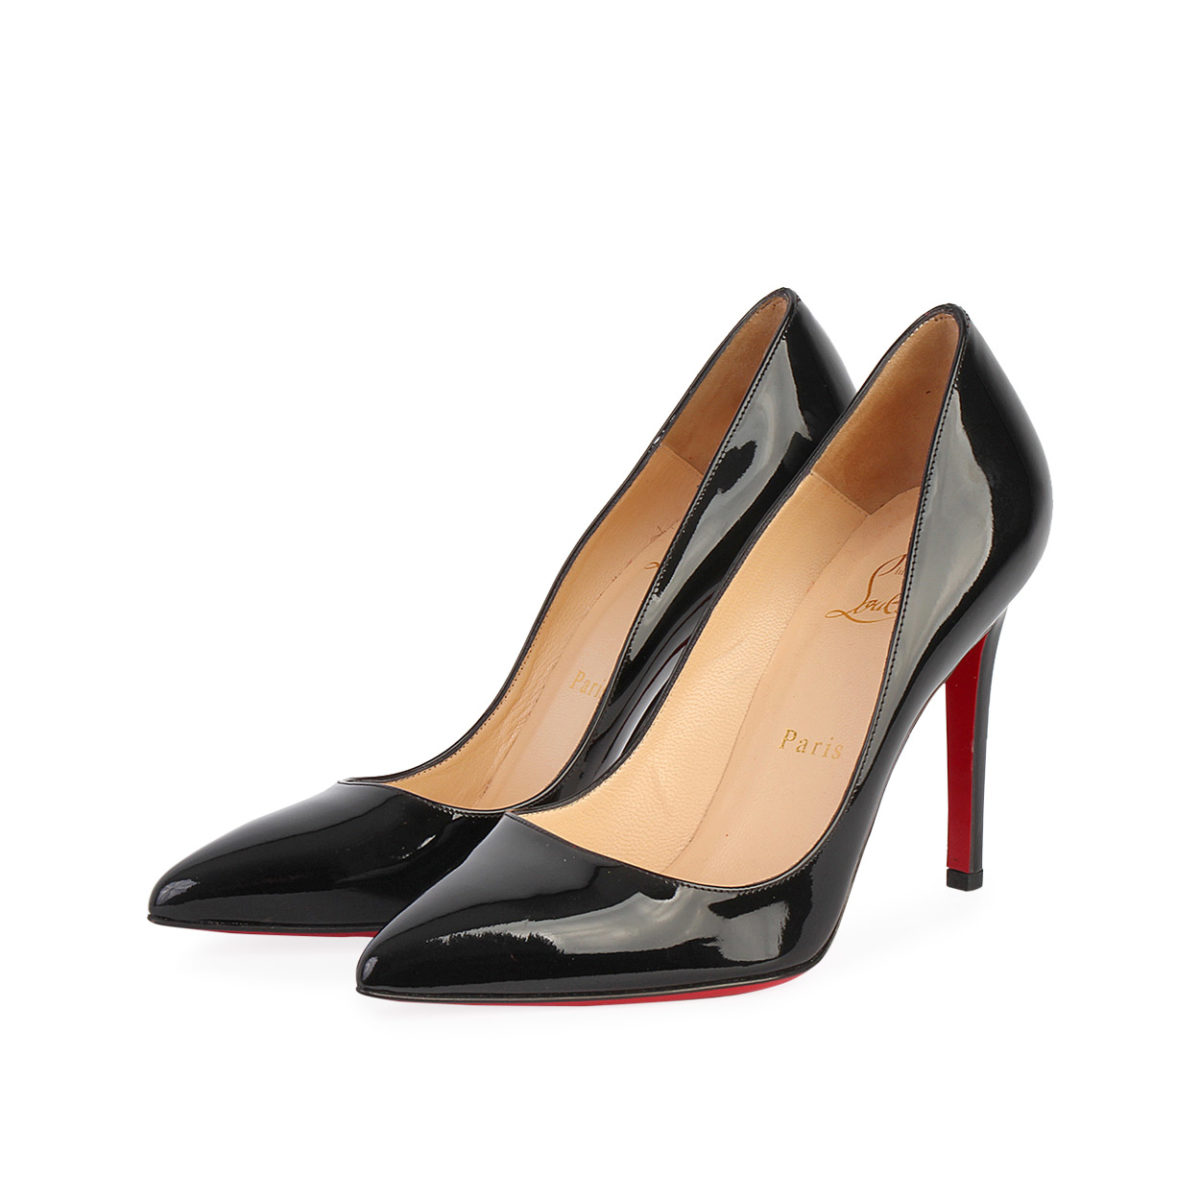 promo code 46630 98bb7 CHRISTIAN LOUBOUTIN Patent Pigalle Pumps Black - S: 37 (4)